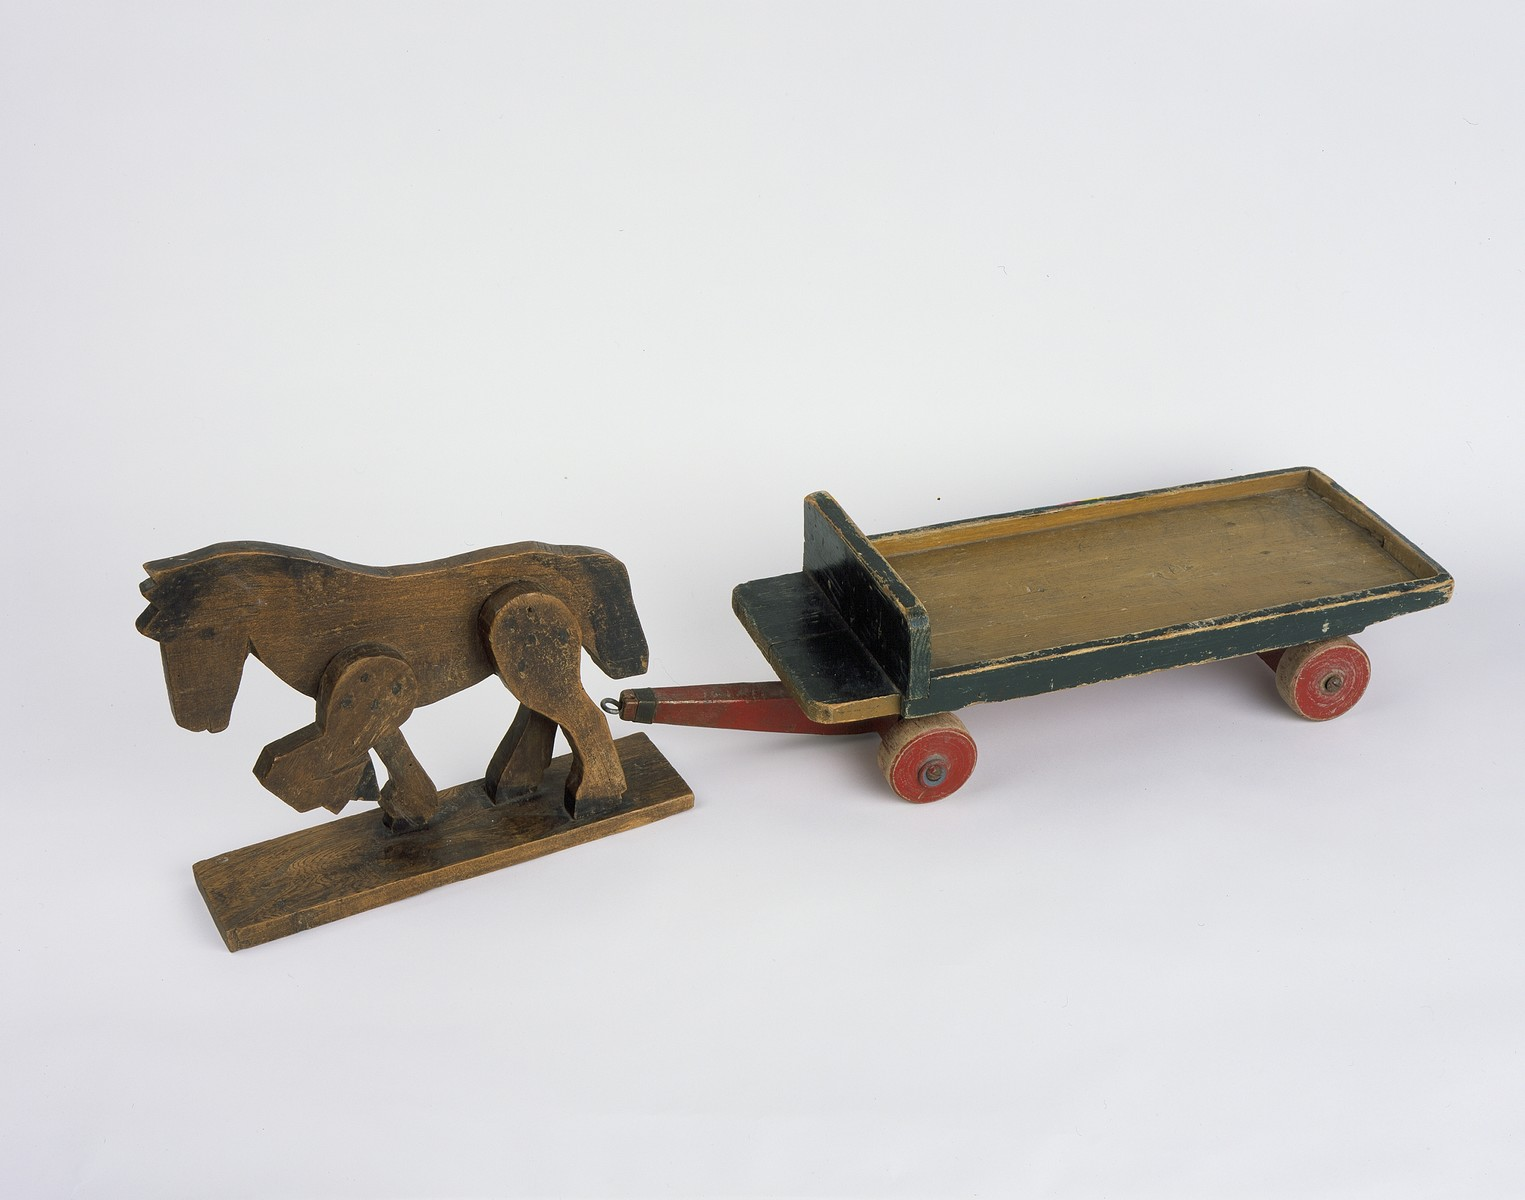 A toy wooden horse and cart used by Max Arpels Lezer, a Jewish child living in hiding in German-occupied Holland.